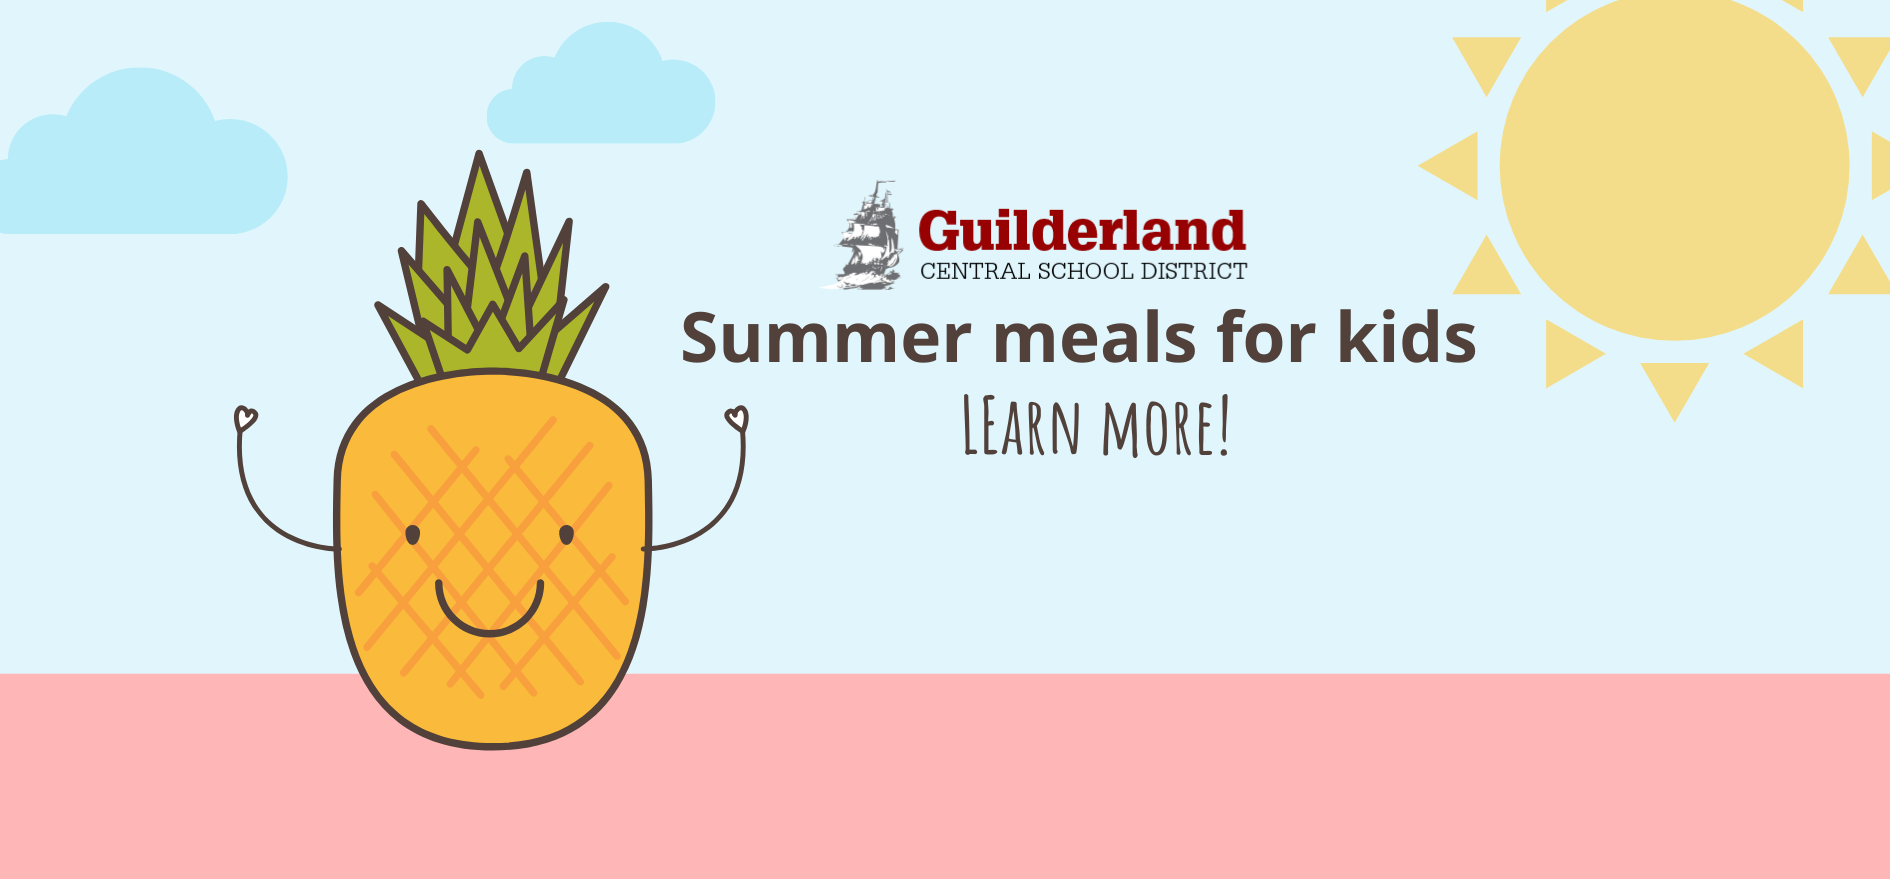 GCSD Summer meals for kids. Learn More!